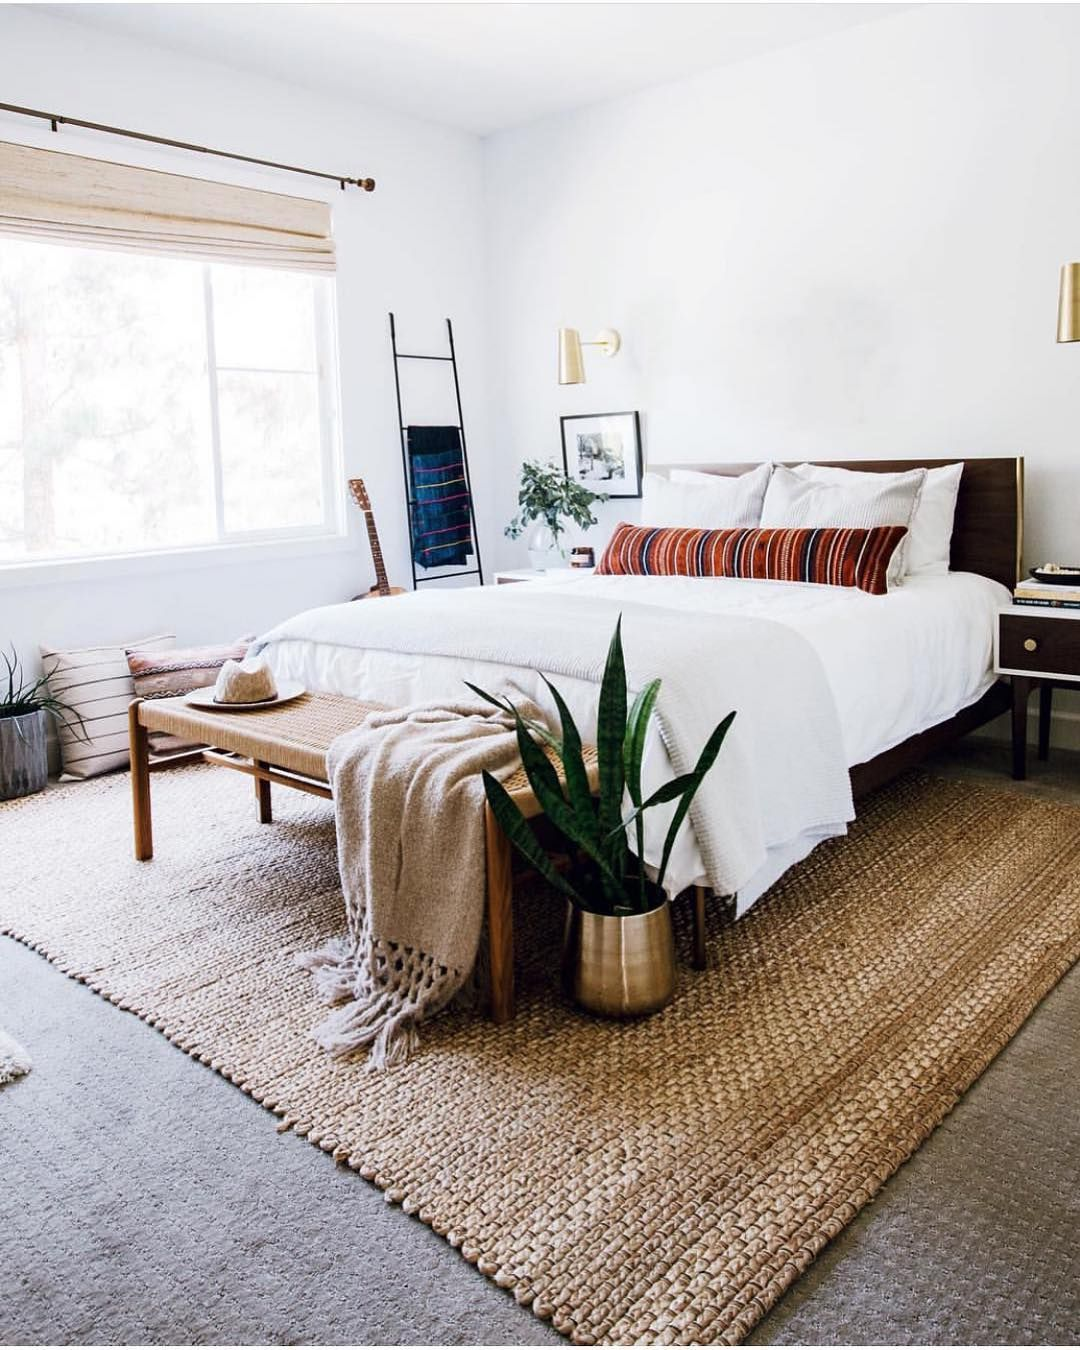 Mid Century Boho Farmhouse On Instagram Can Never Get Enough Of This Beautiful Bedroom By An Modern Bedroom Interior Home Bedroom Mid Century Modern Bedroom